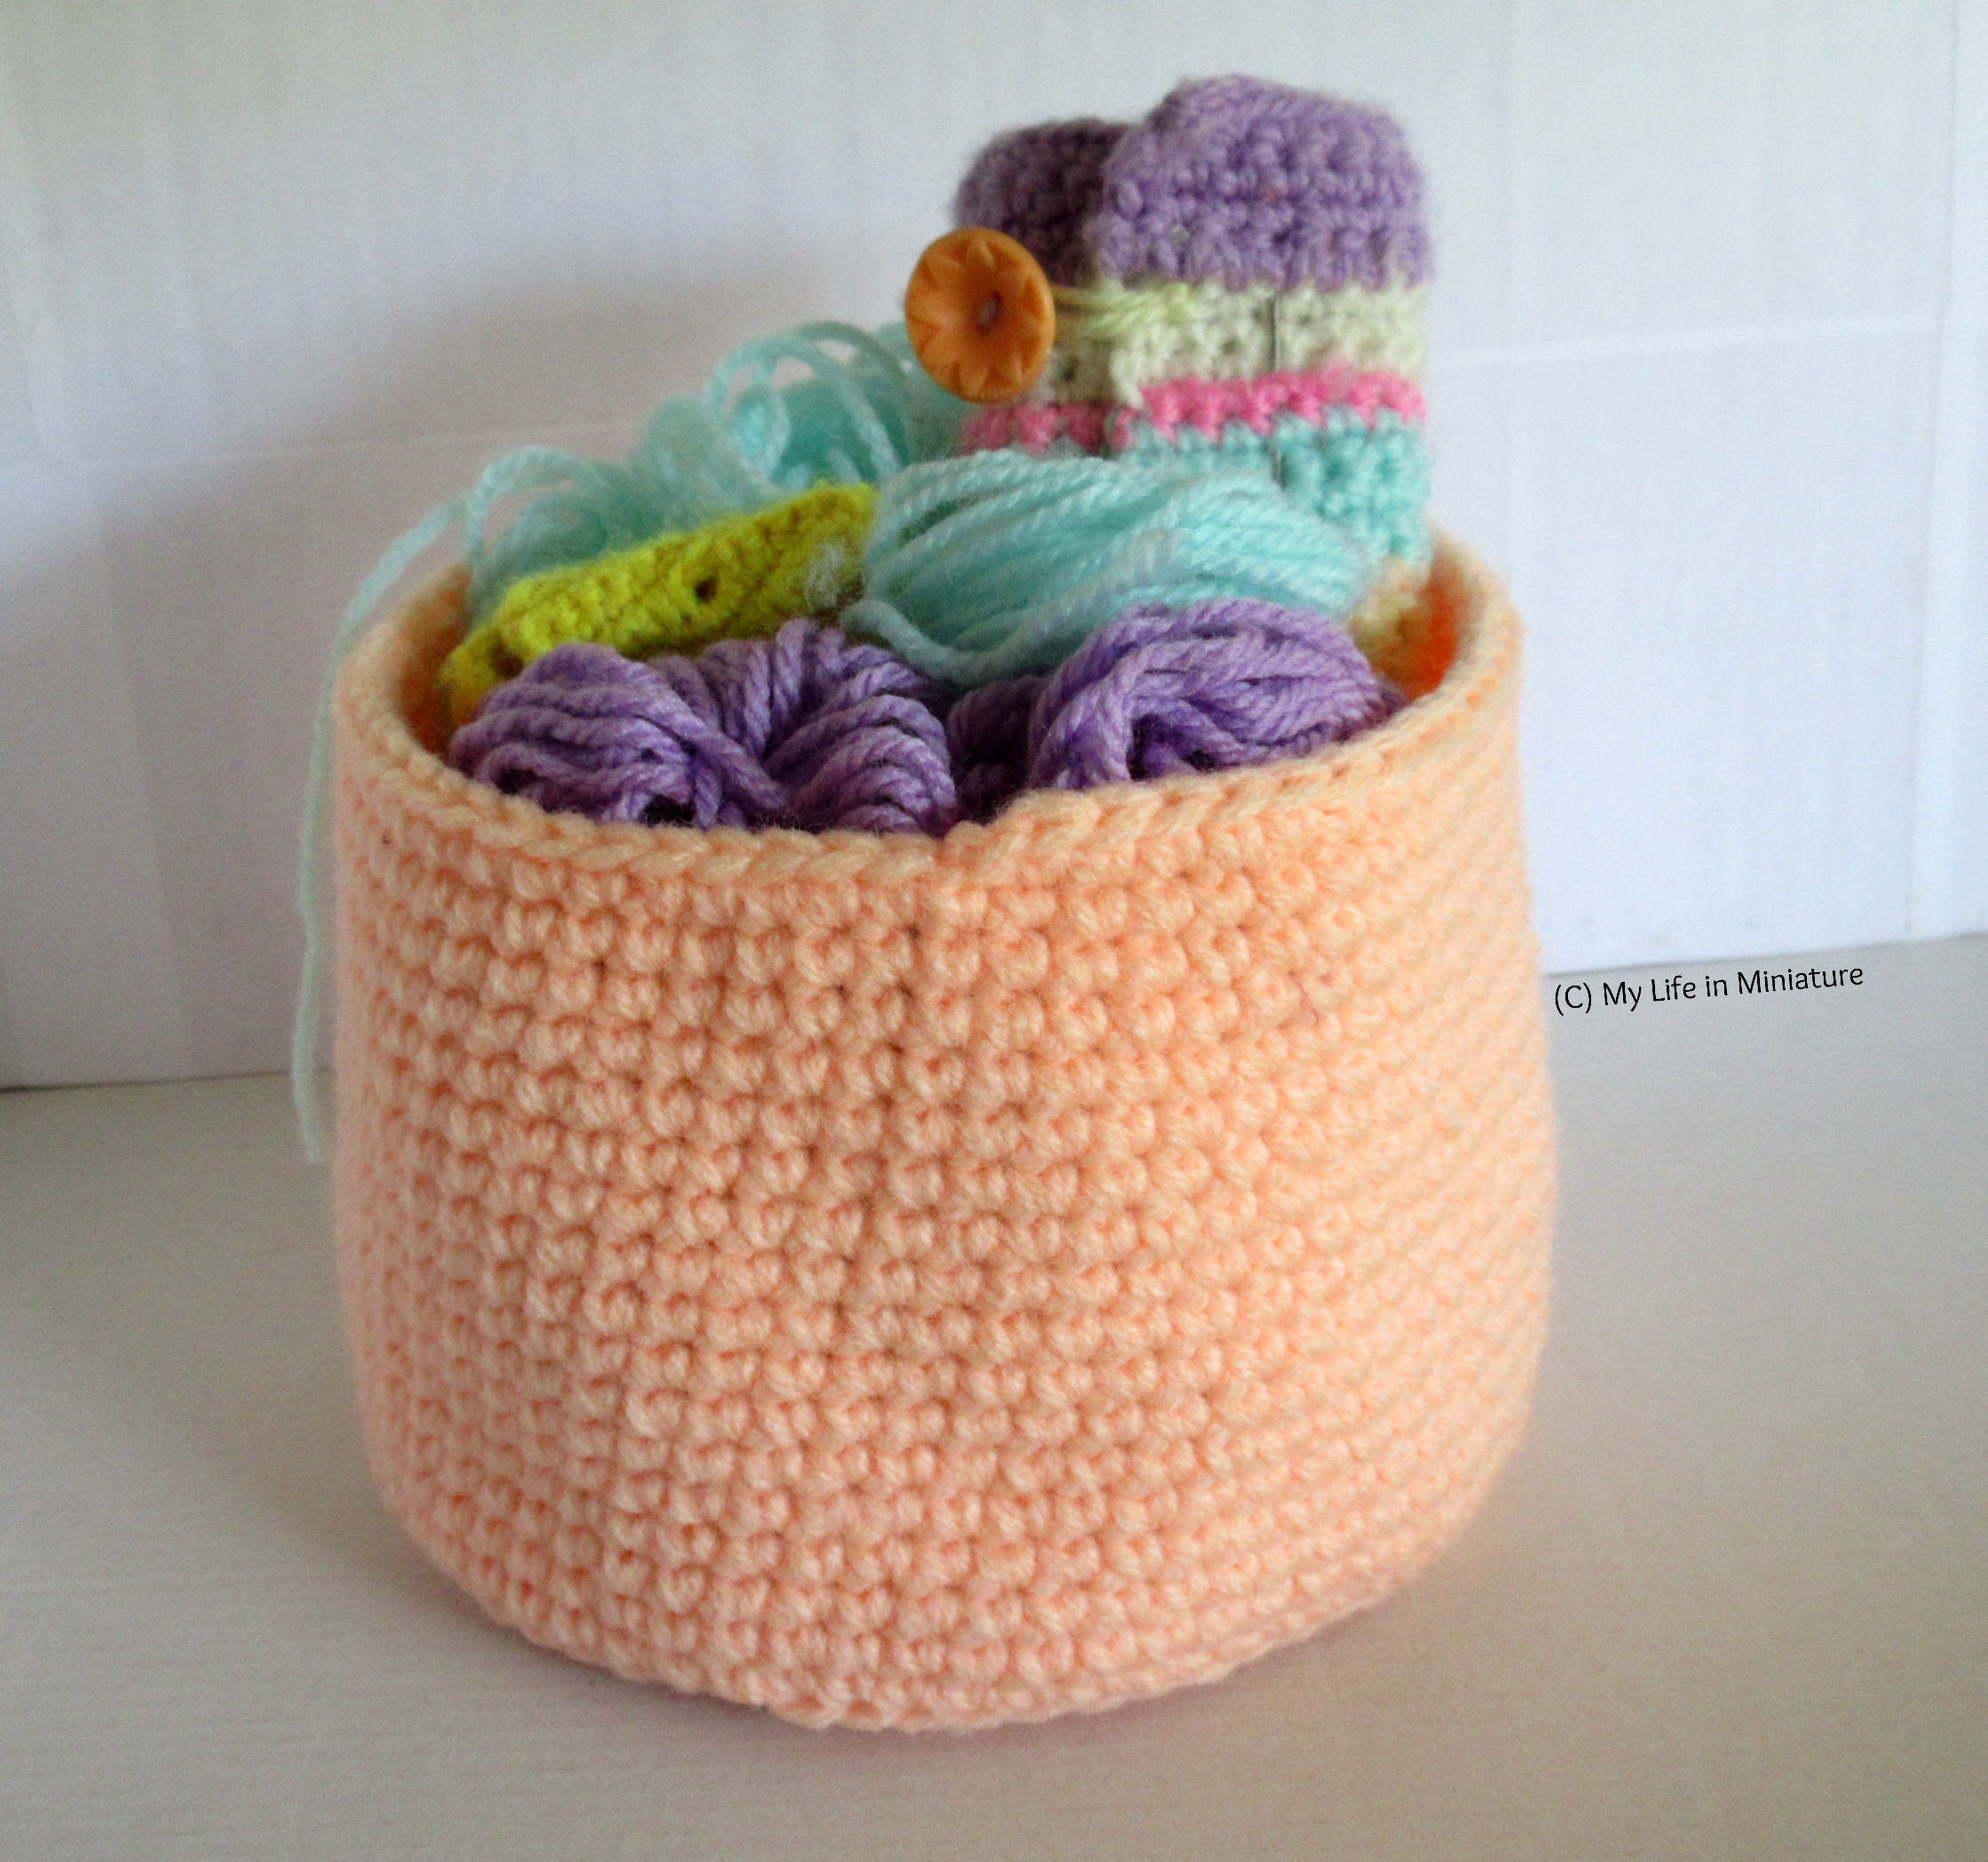 An orange nest sits against a white background, filled with yarn, a crocheted hook roll, and a small yellow pouch holding stitch markers.